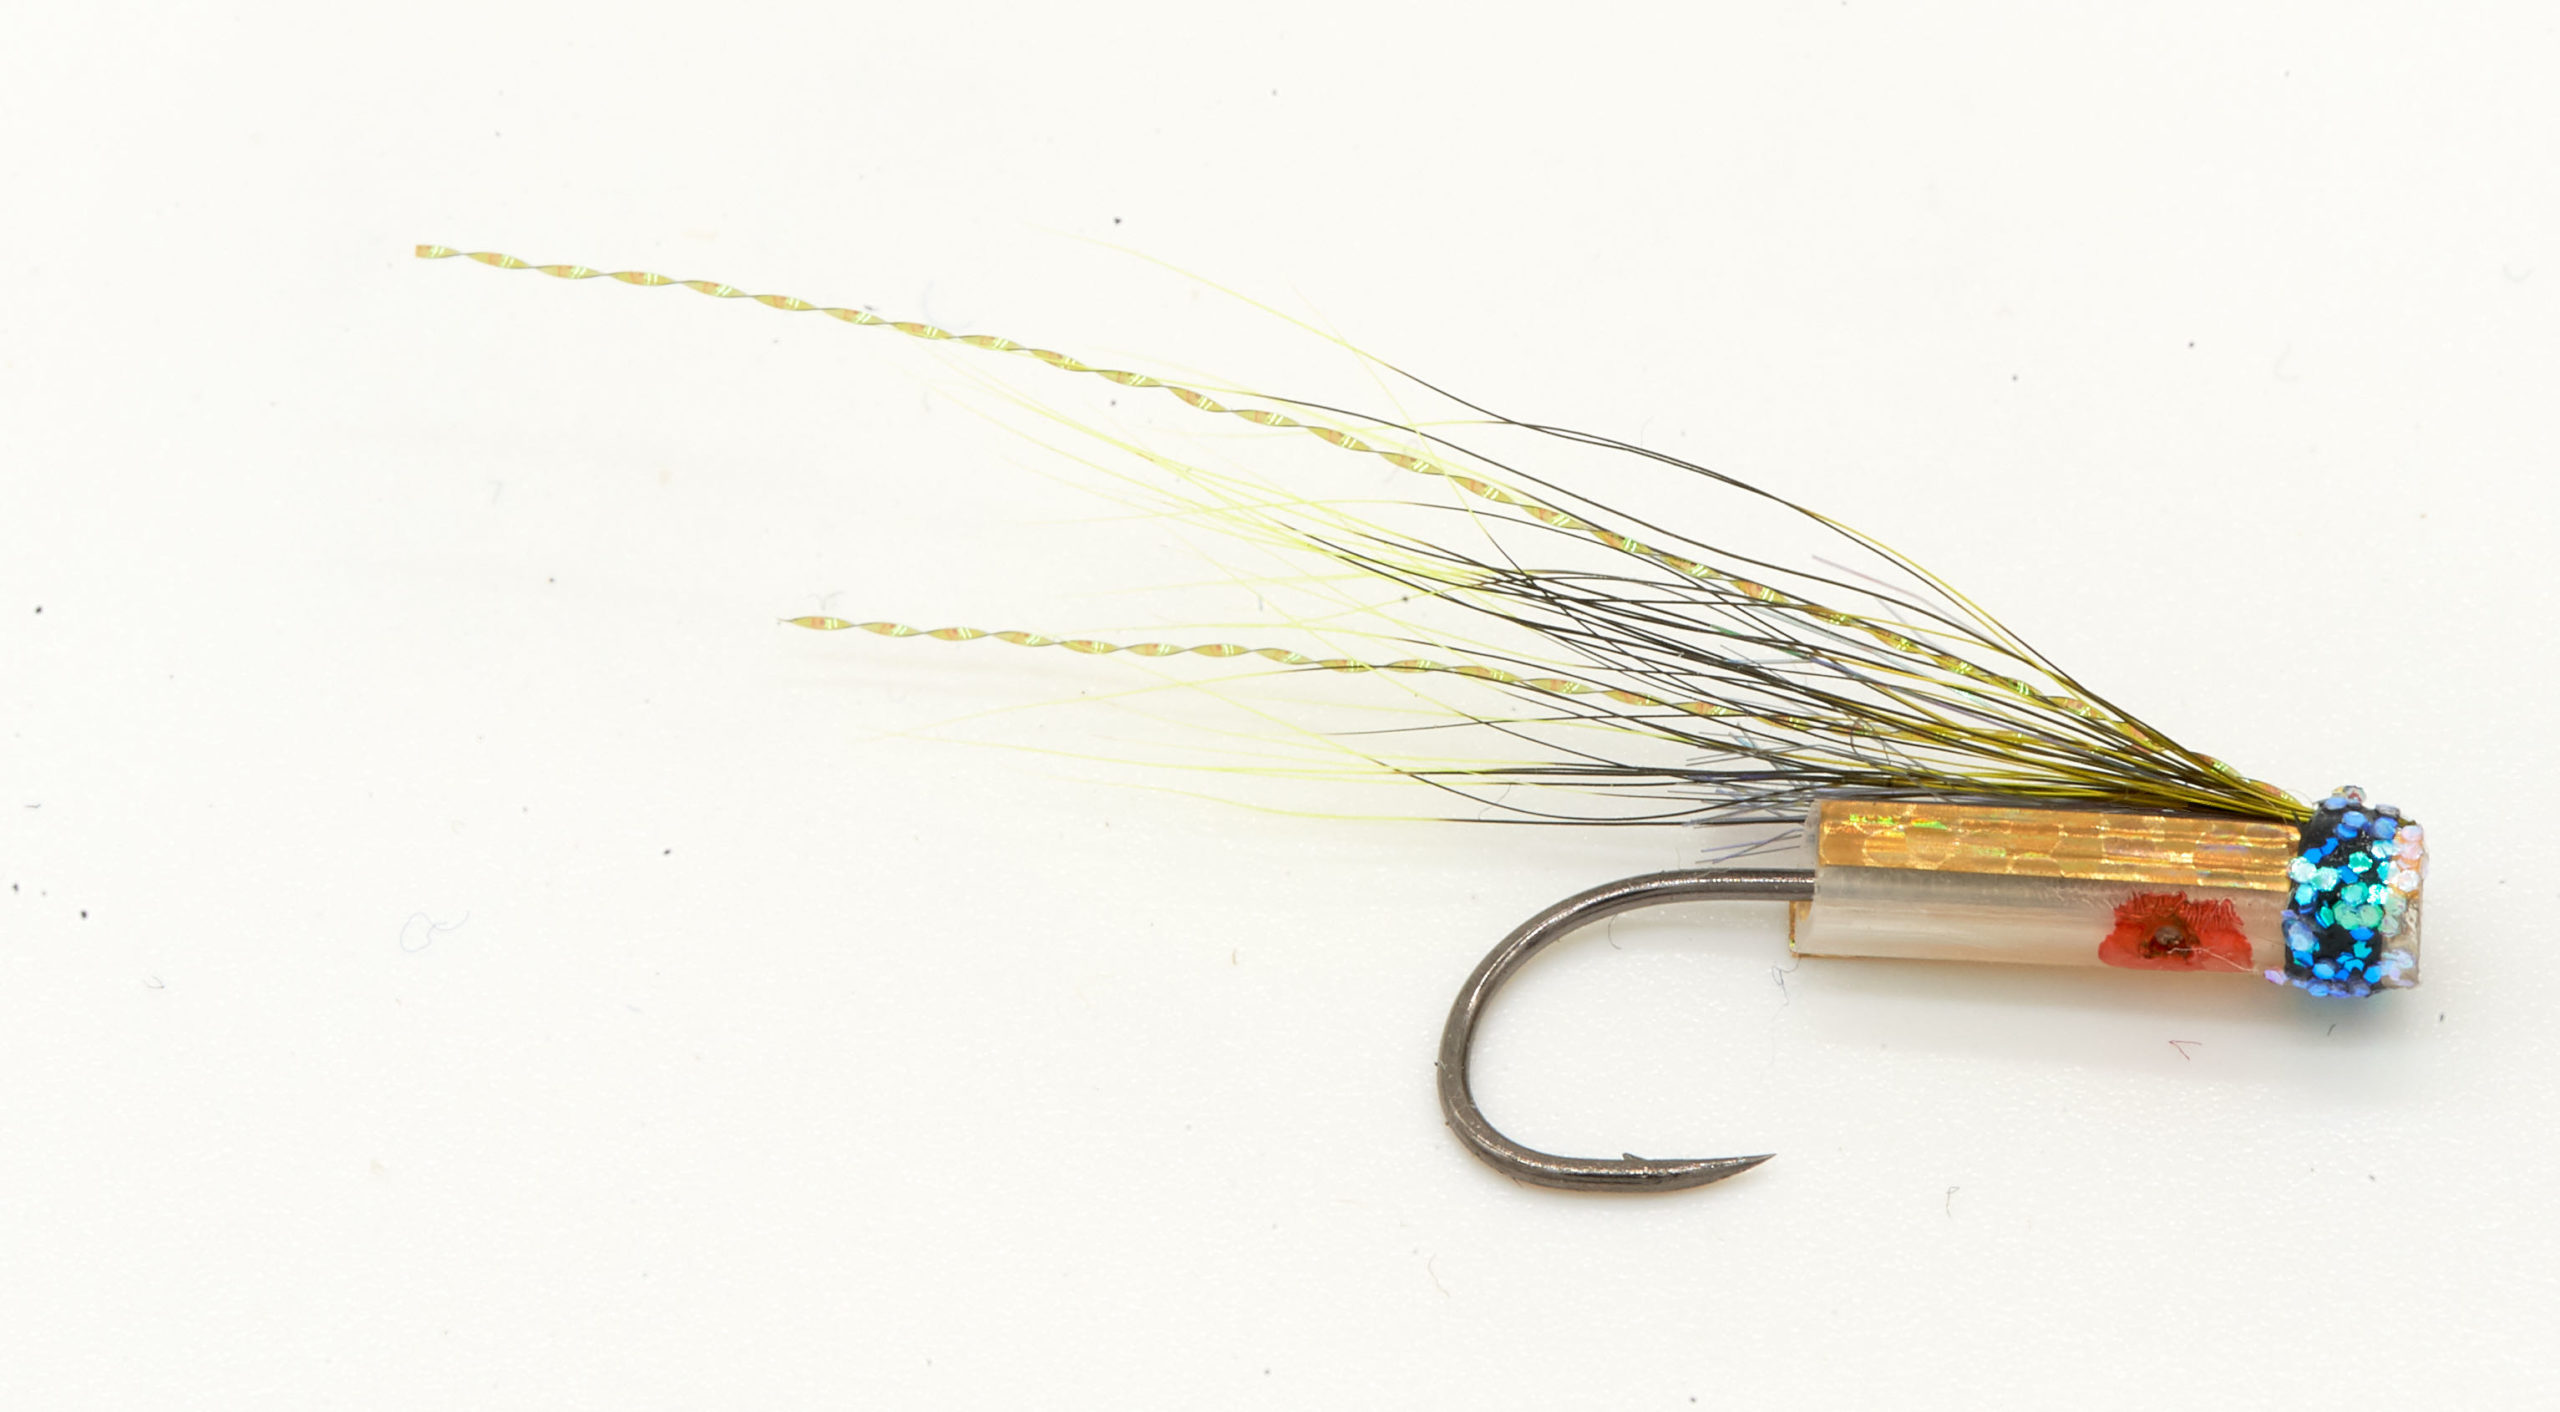 HITCHMAN GOLD # 10-14